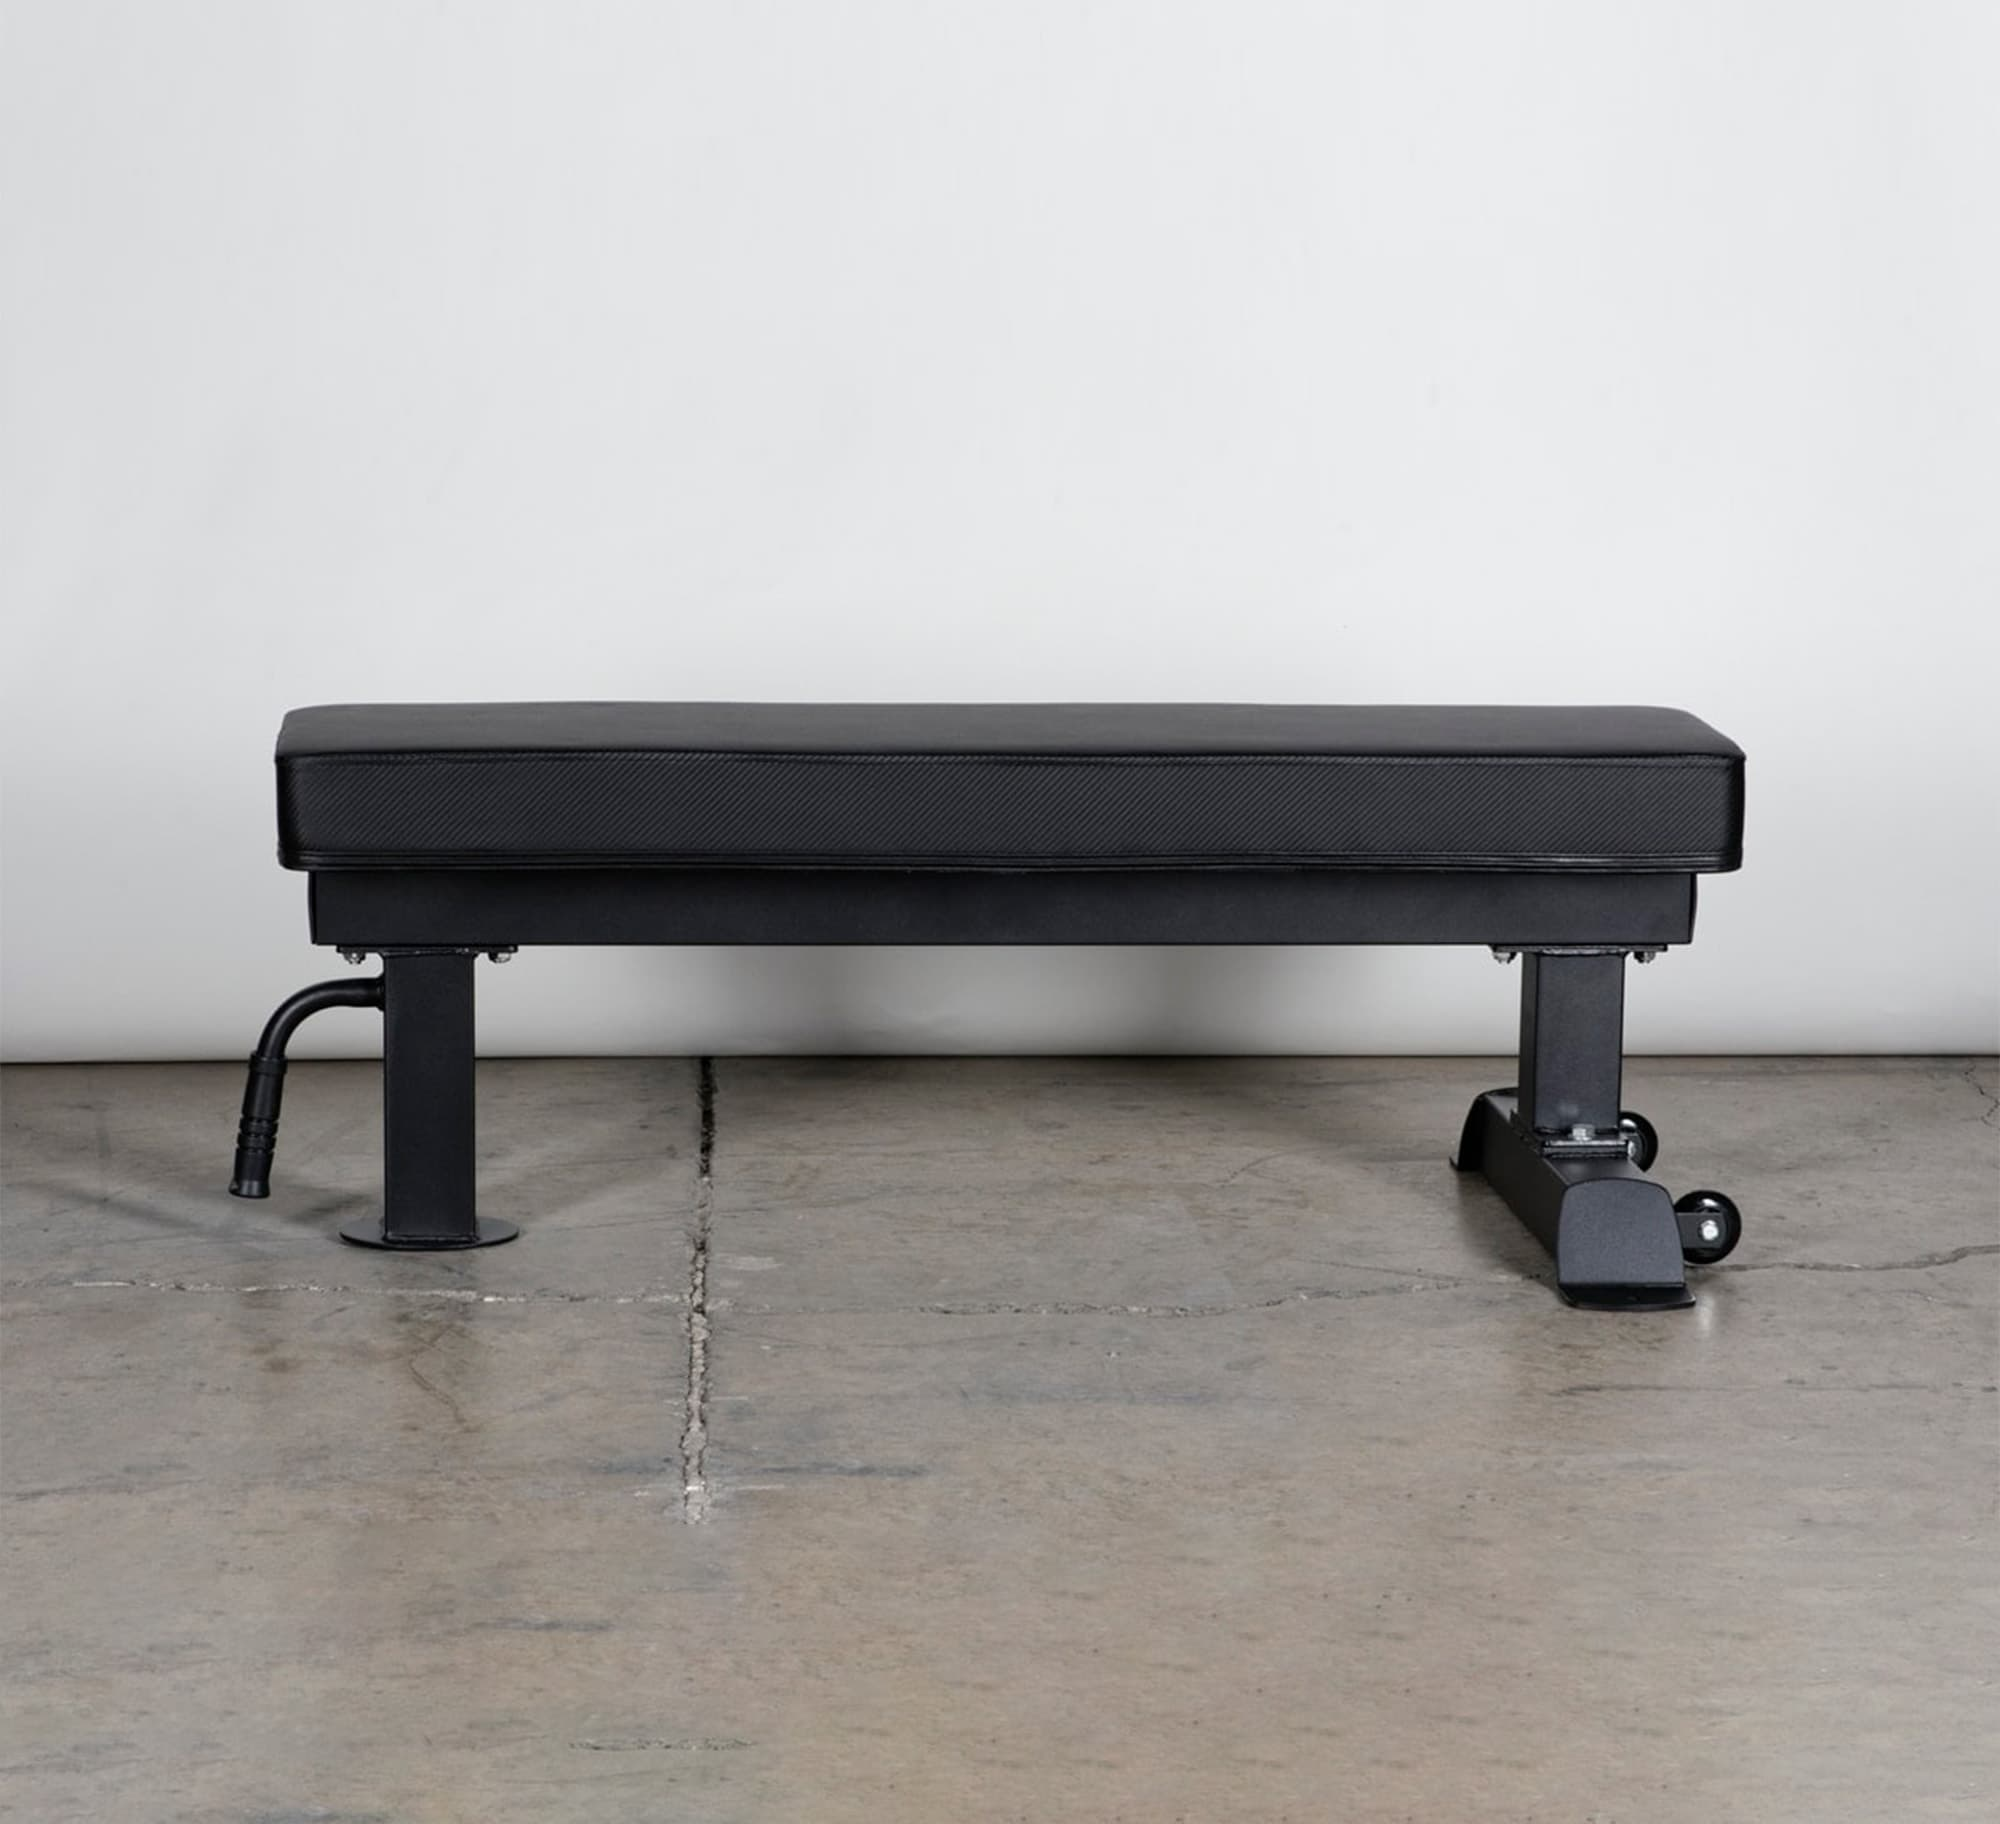 mighty grip fat flat bench 2.0